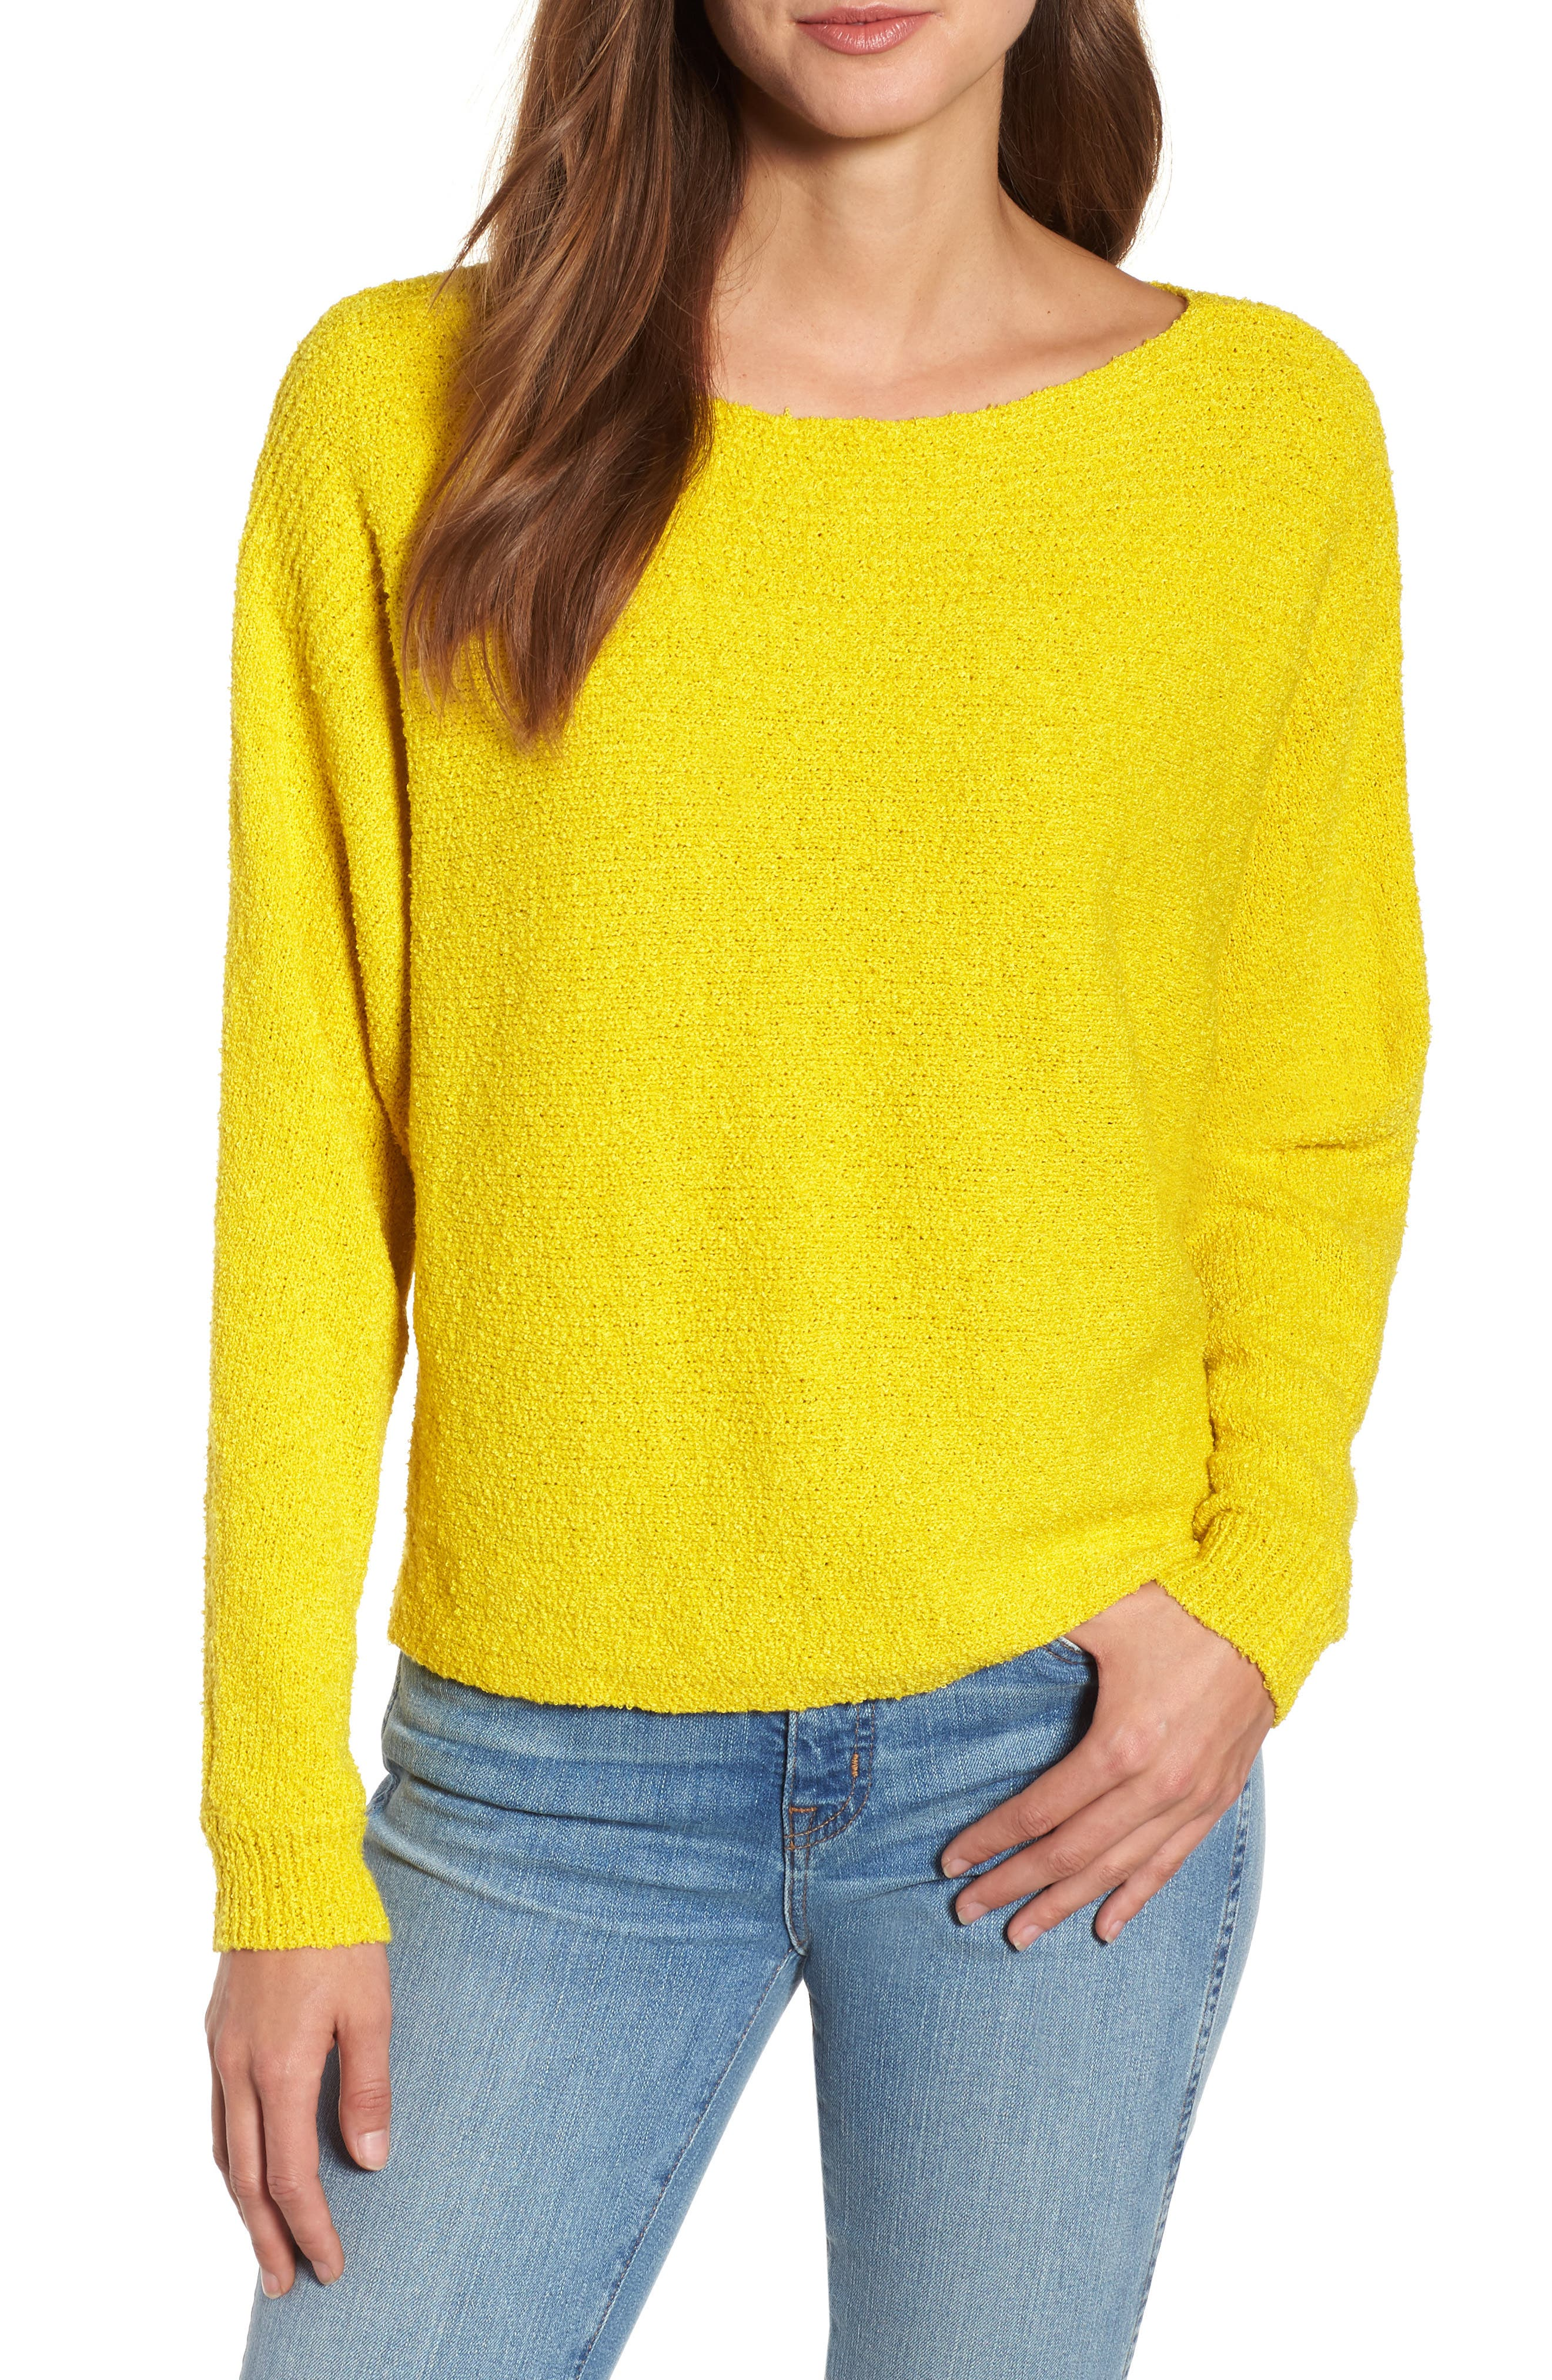 Calson<sup>®</sup> Dolman Sleeve Sweater,                             Main thumbnail 3, color,